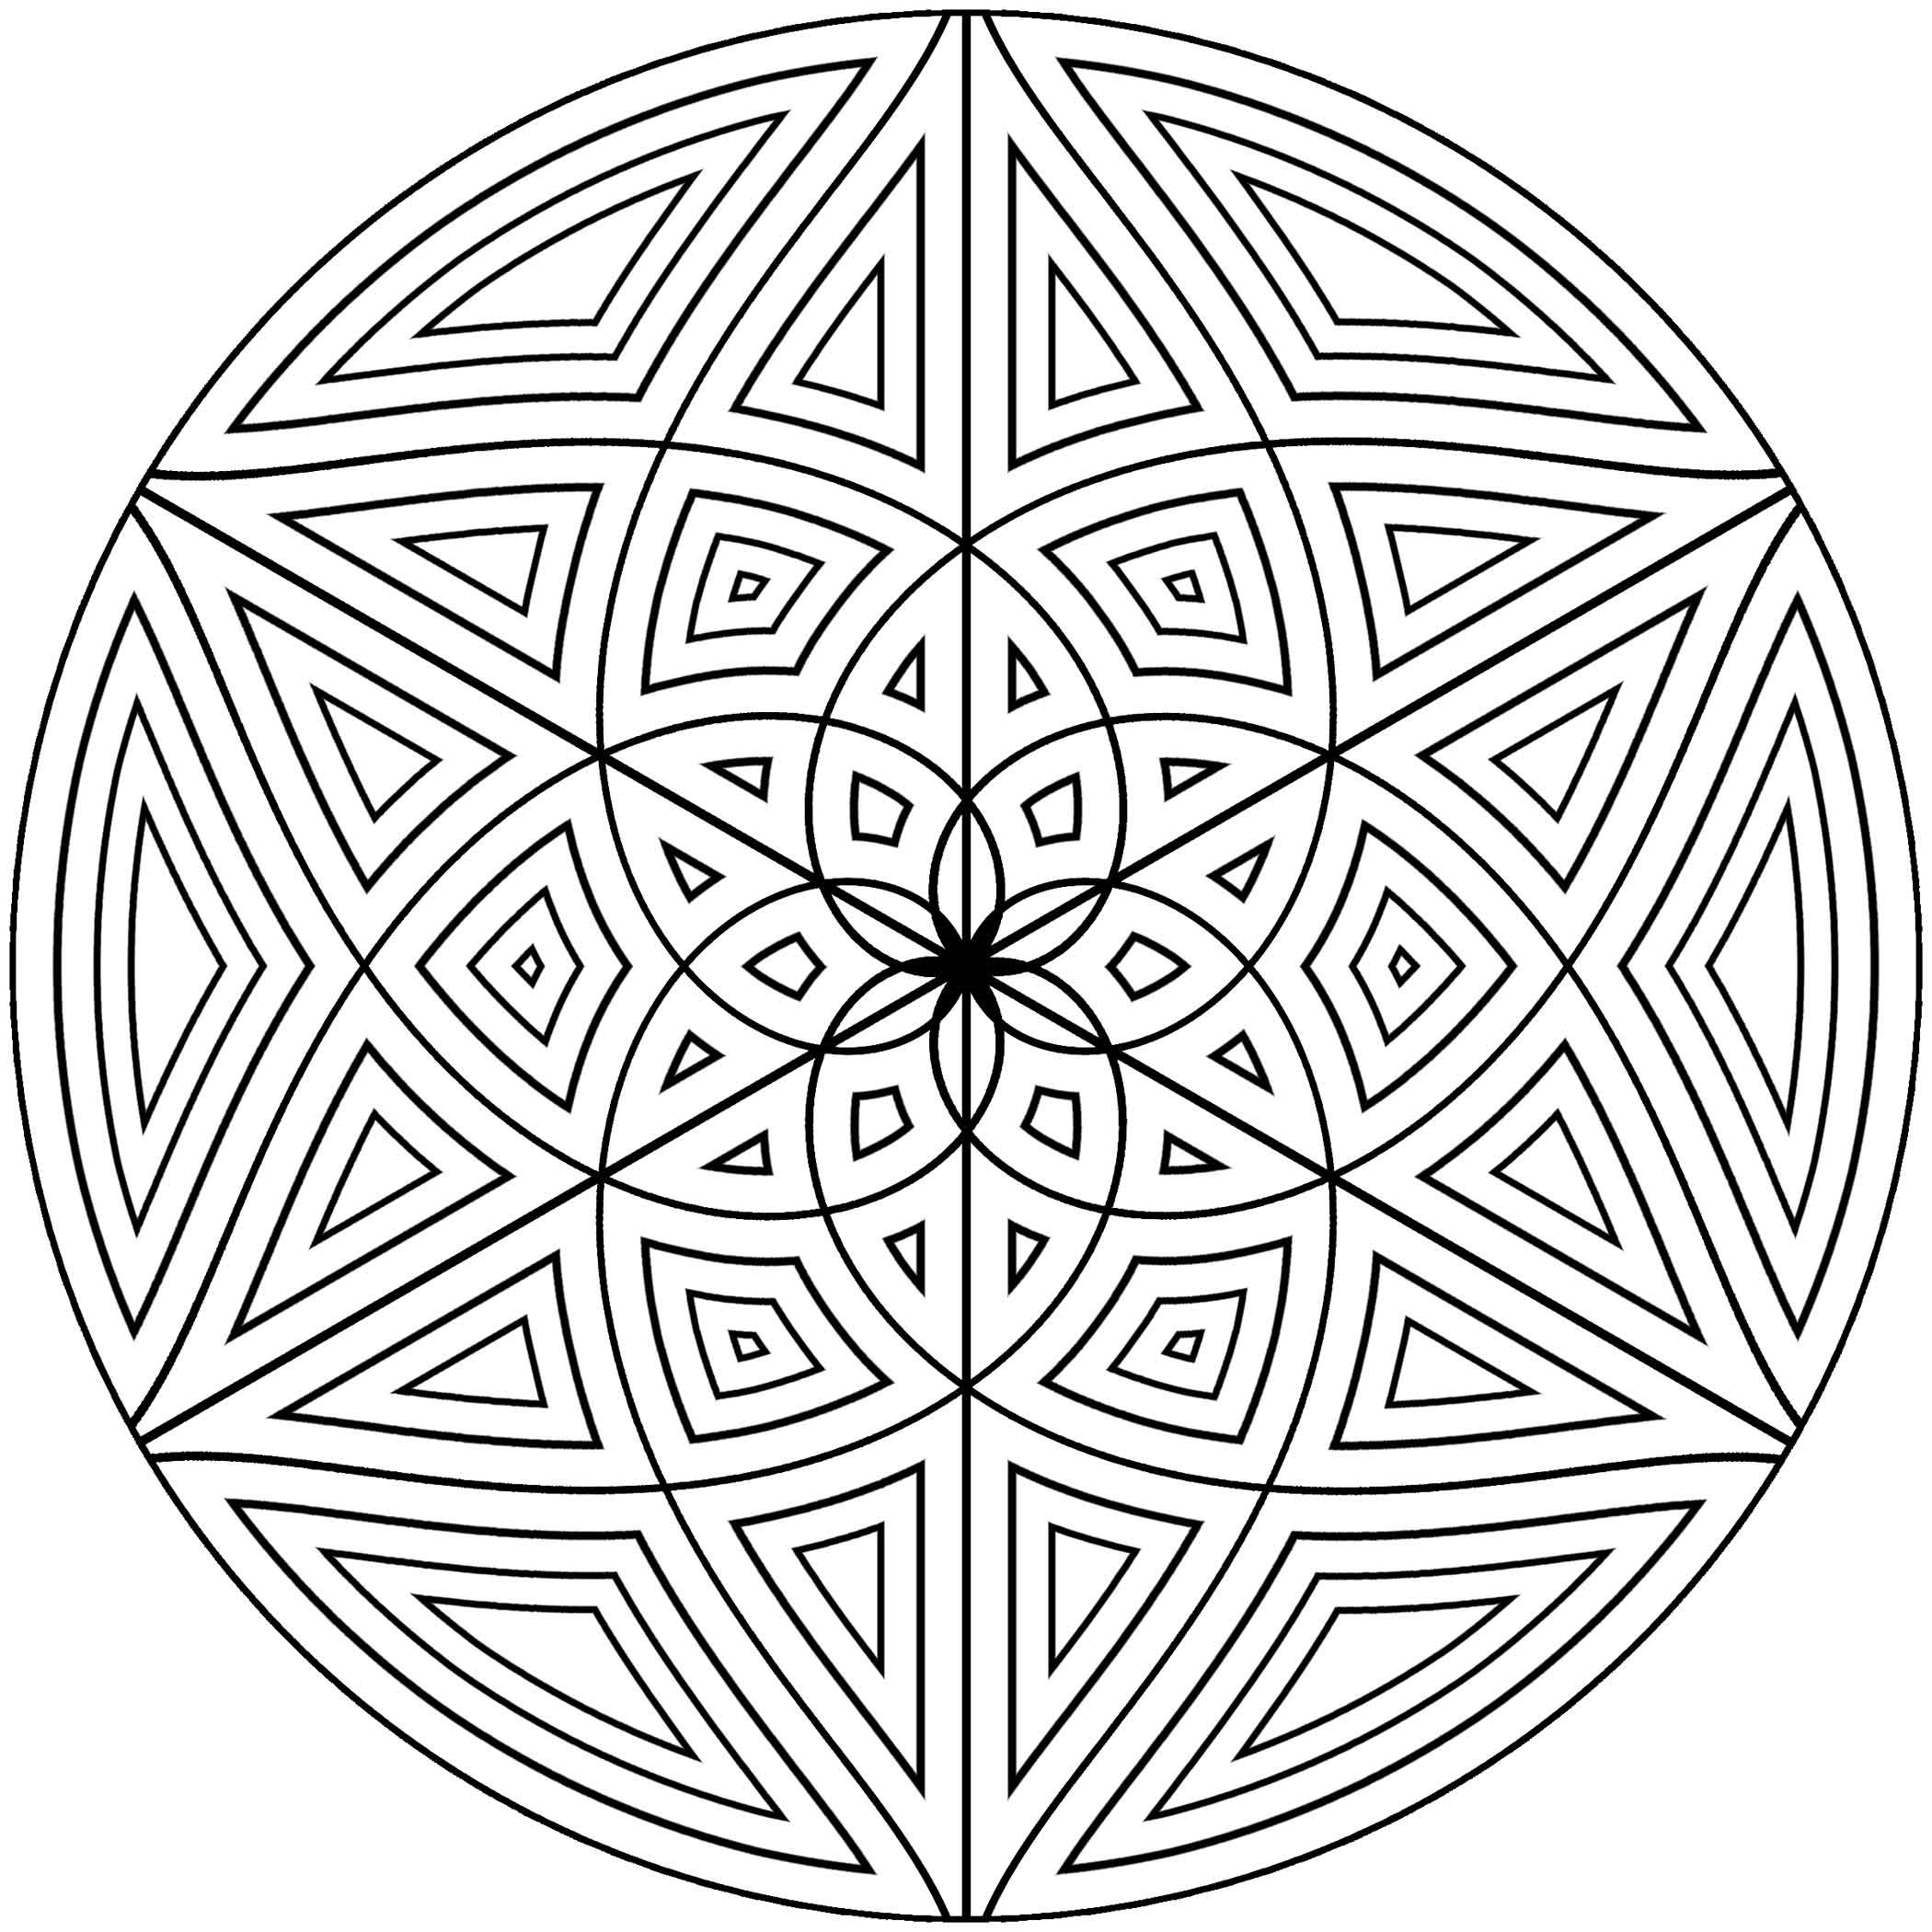 hard design coloring pages to print this free coloring page coloring difficult owls hard design coloring pages